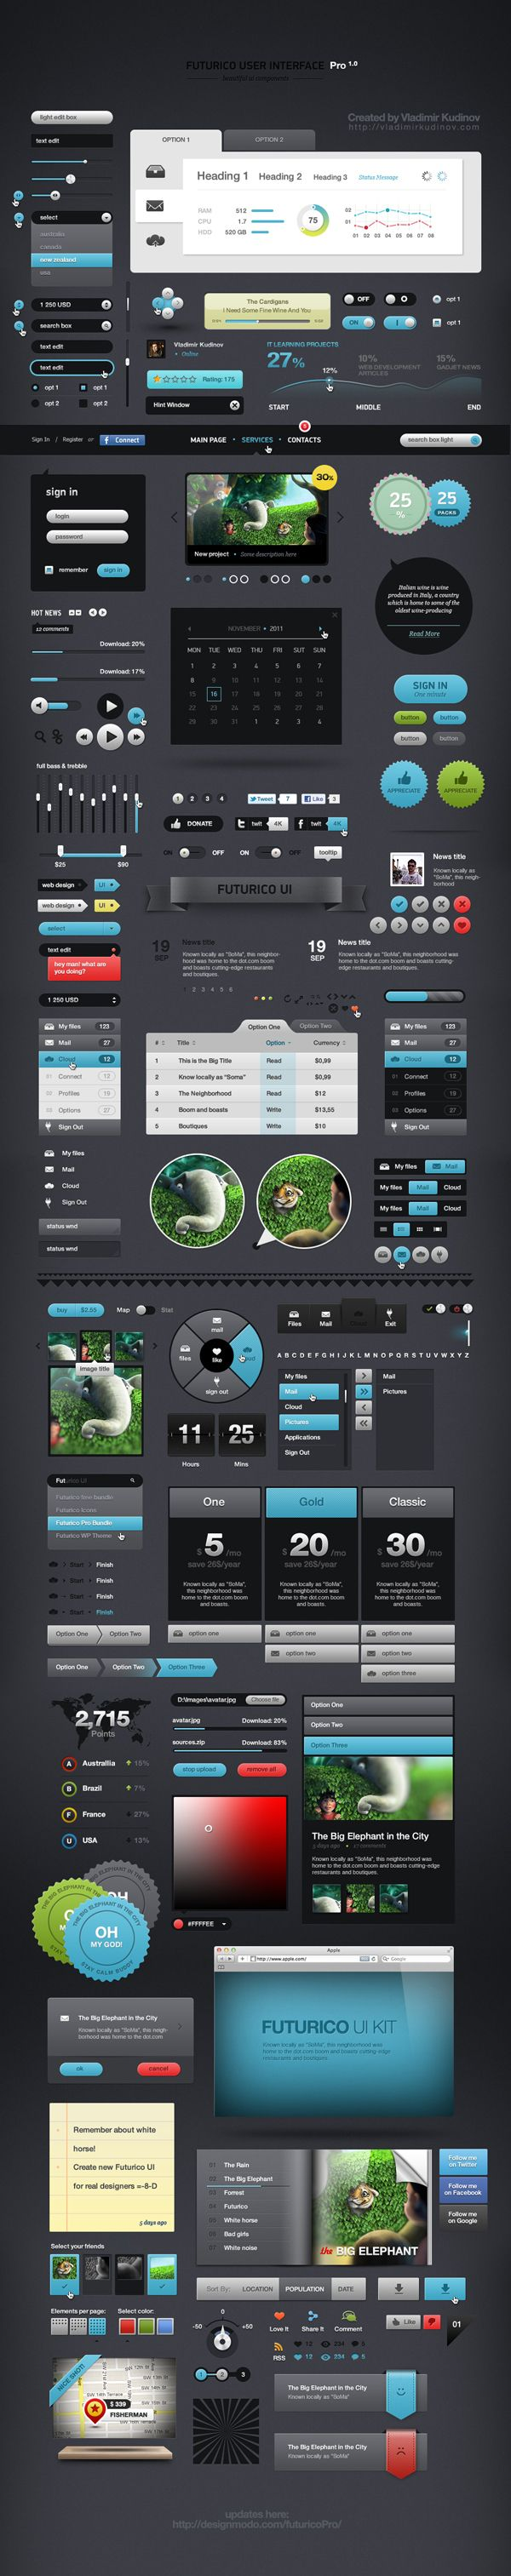 Futurico User Interface Pro by Vladimir Kudinov, via Behance